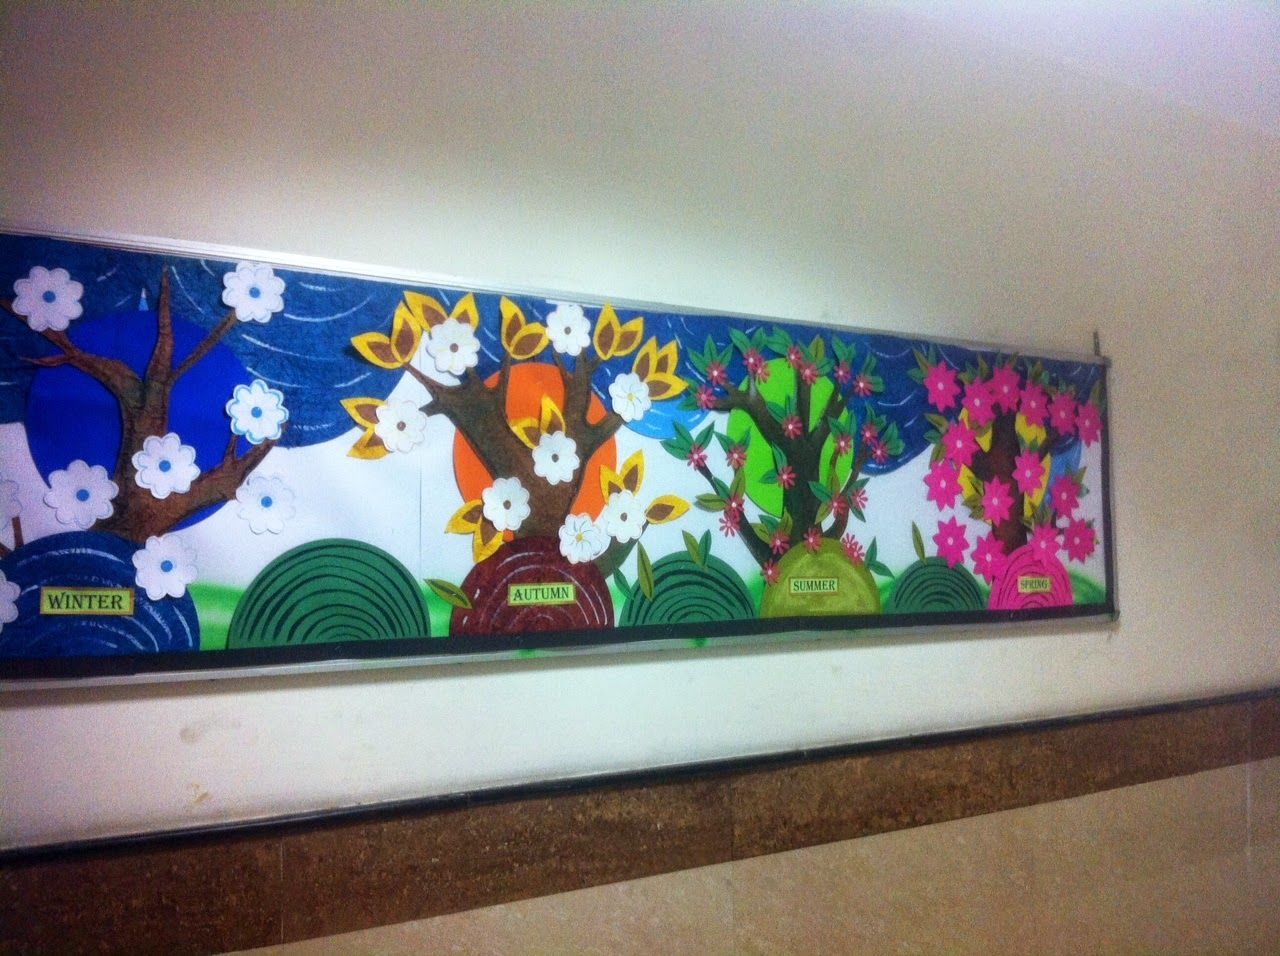 Art craft ideas and bulletin boards for elementary schools vegetable - Art Craft Ideas And Bulletin Boards For Elementary Schools Seasons Bulletin Board